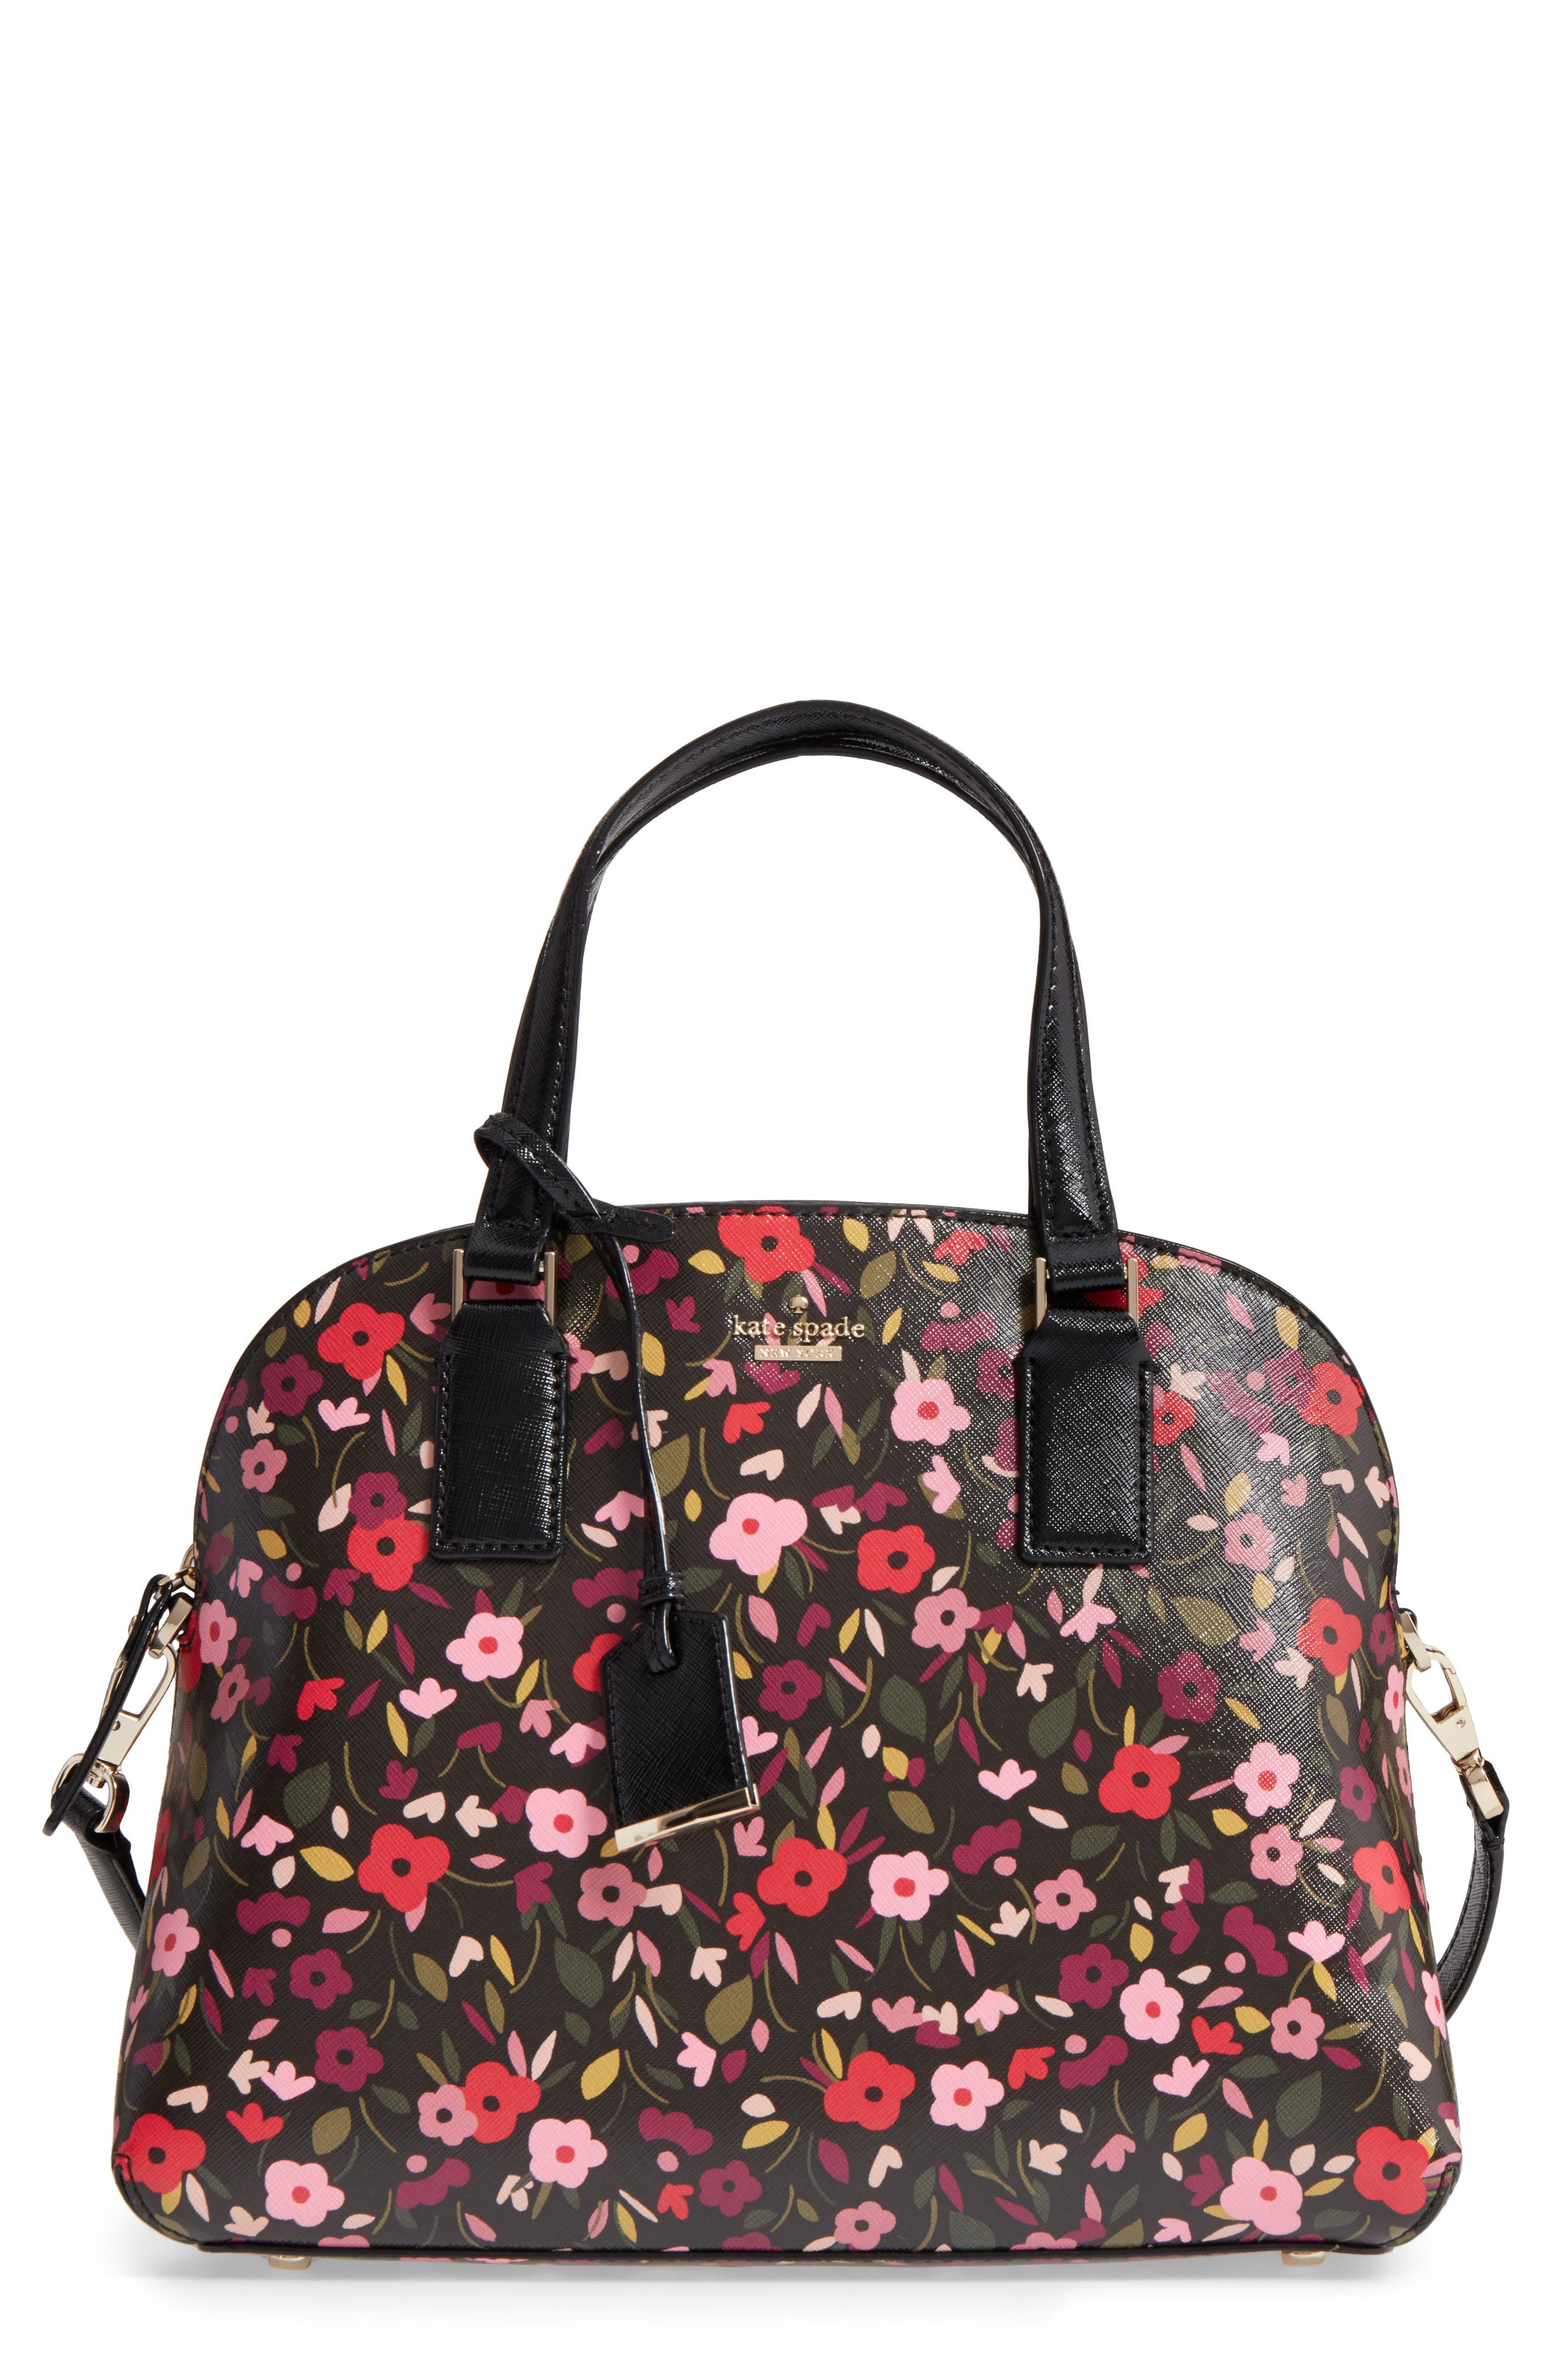 KATE SPADE NEW YORK cameron street boho floral- lottie leather satchel